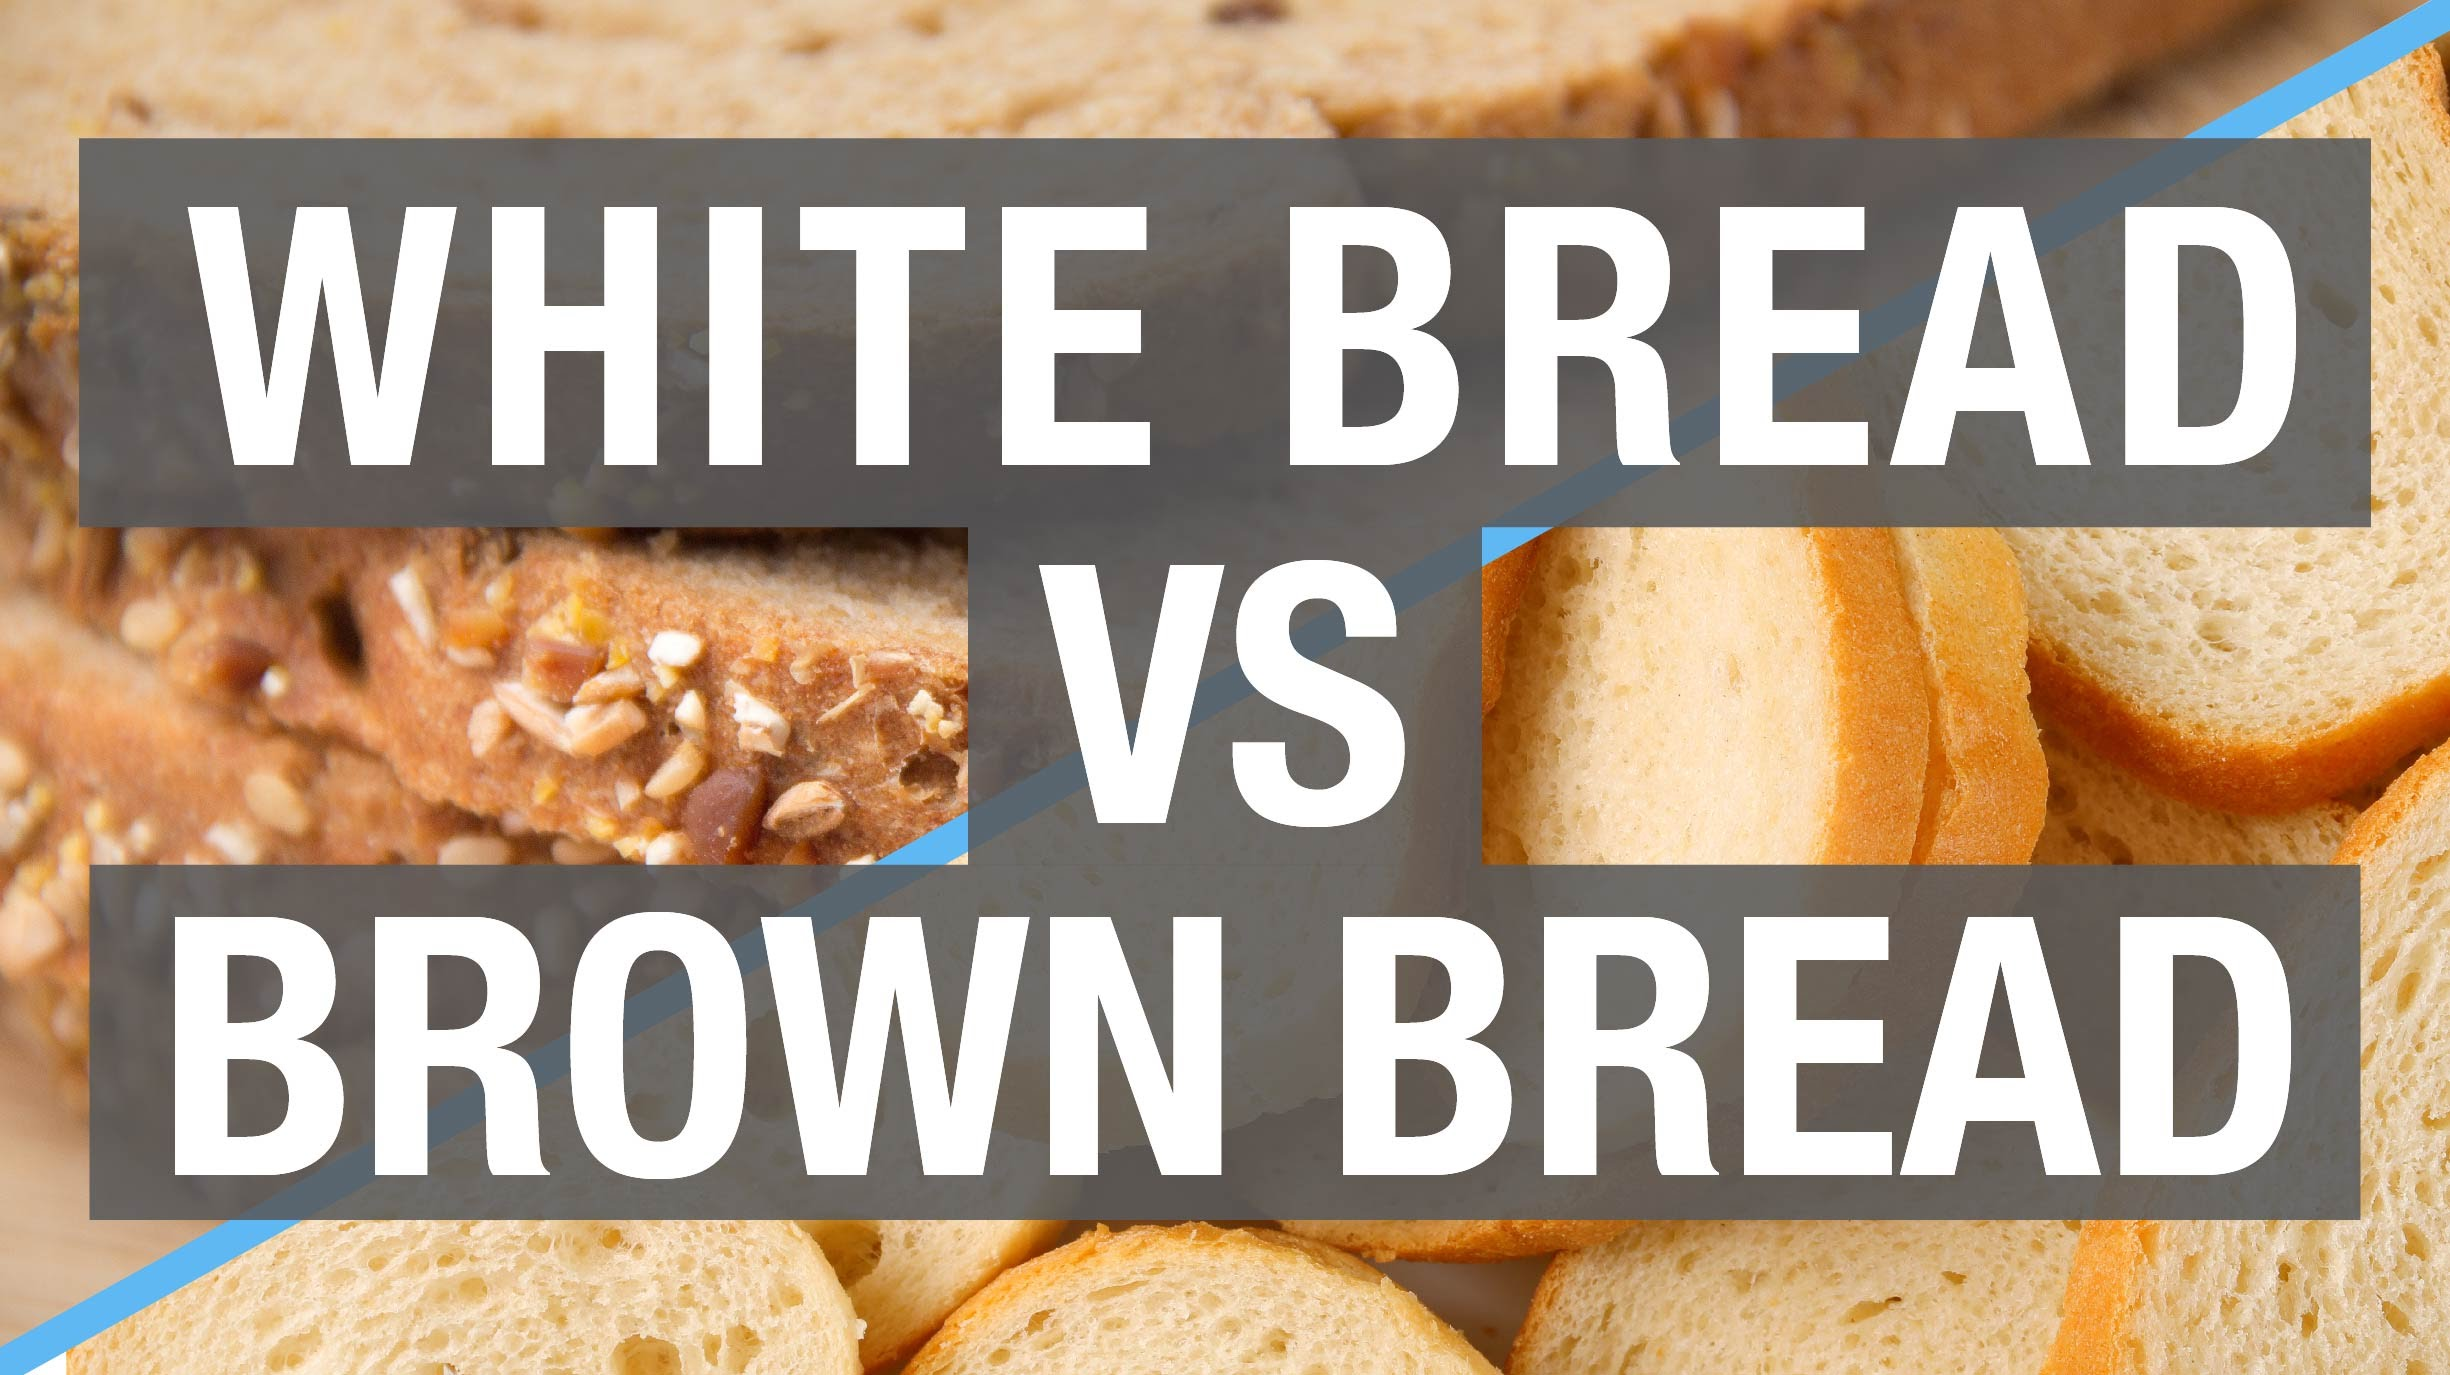 「健康補給站:白麵包好還是全麥麵包好?」- White Bread vs. Brown Bread - Which Is Better for You?